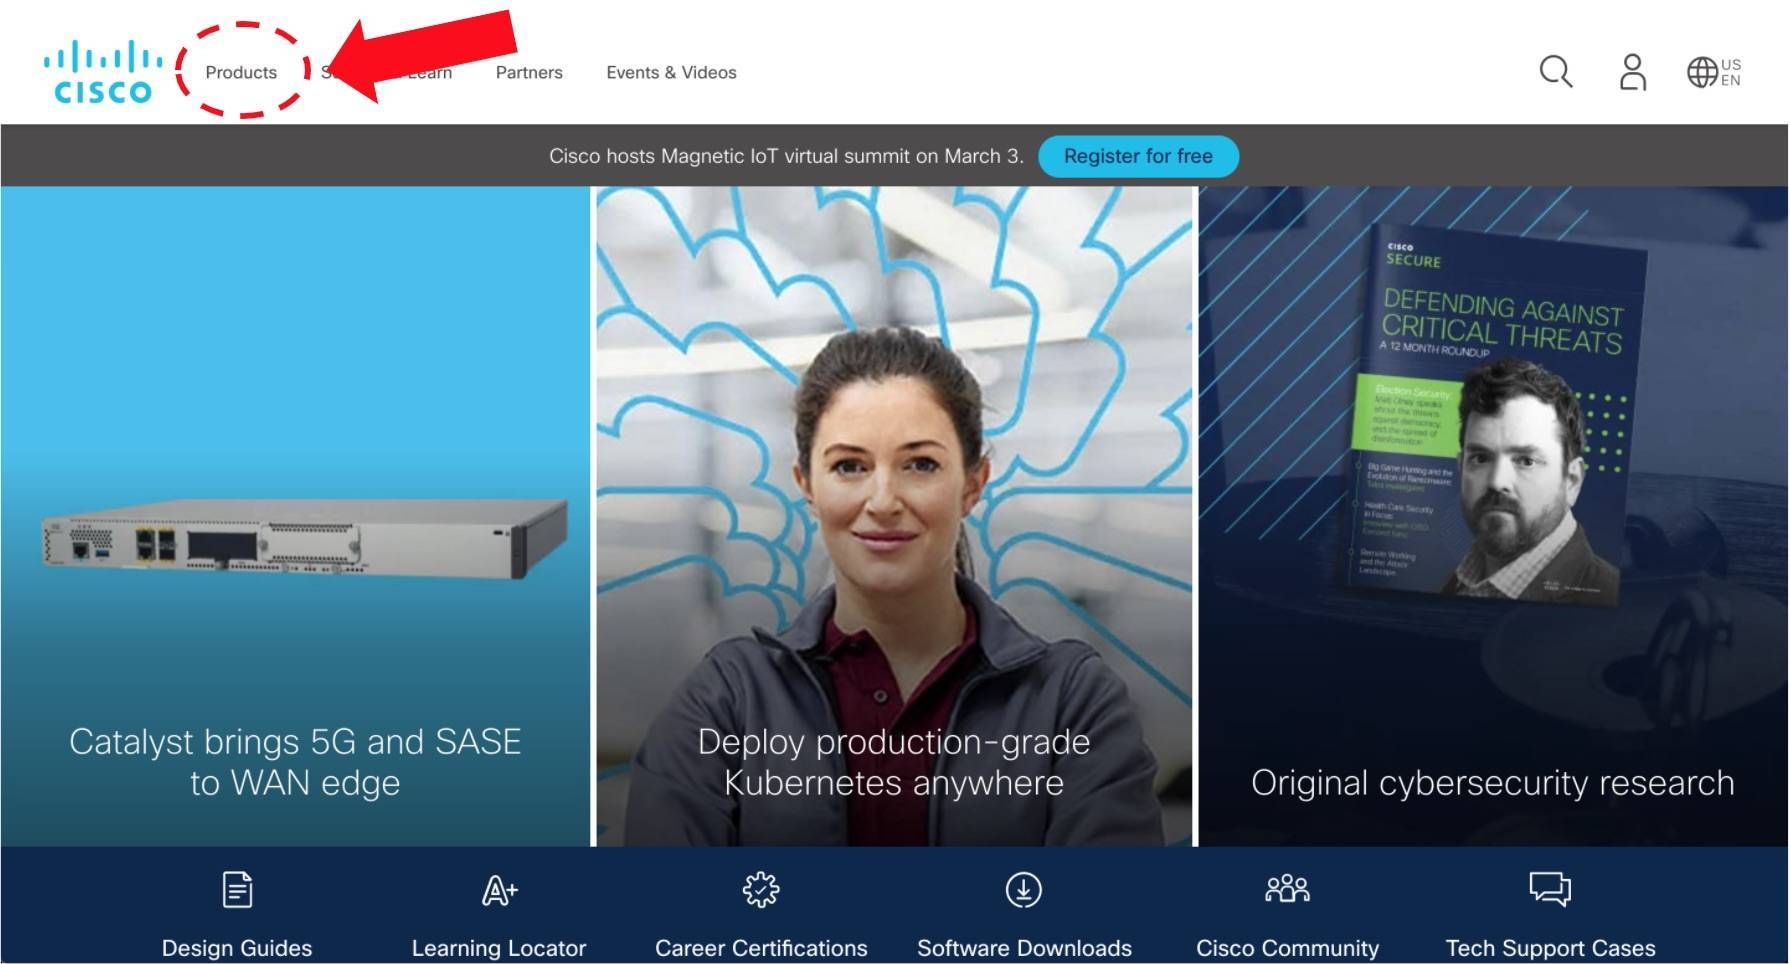 an example of the navigation menu on Cisco's website homepage